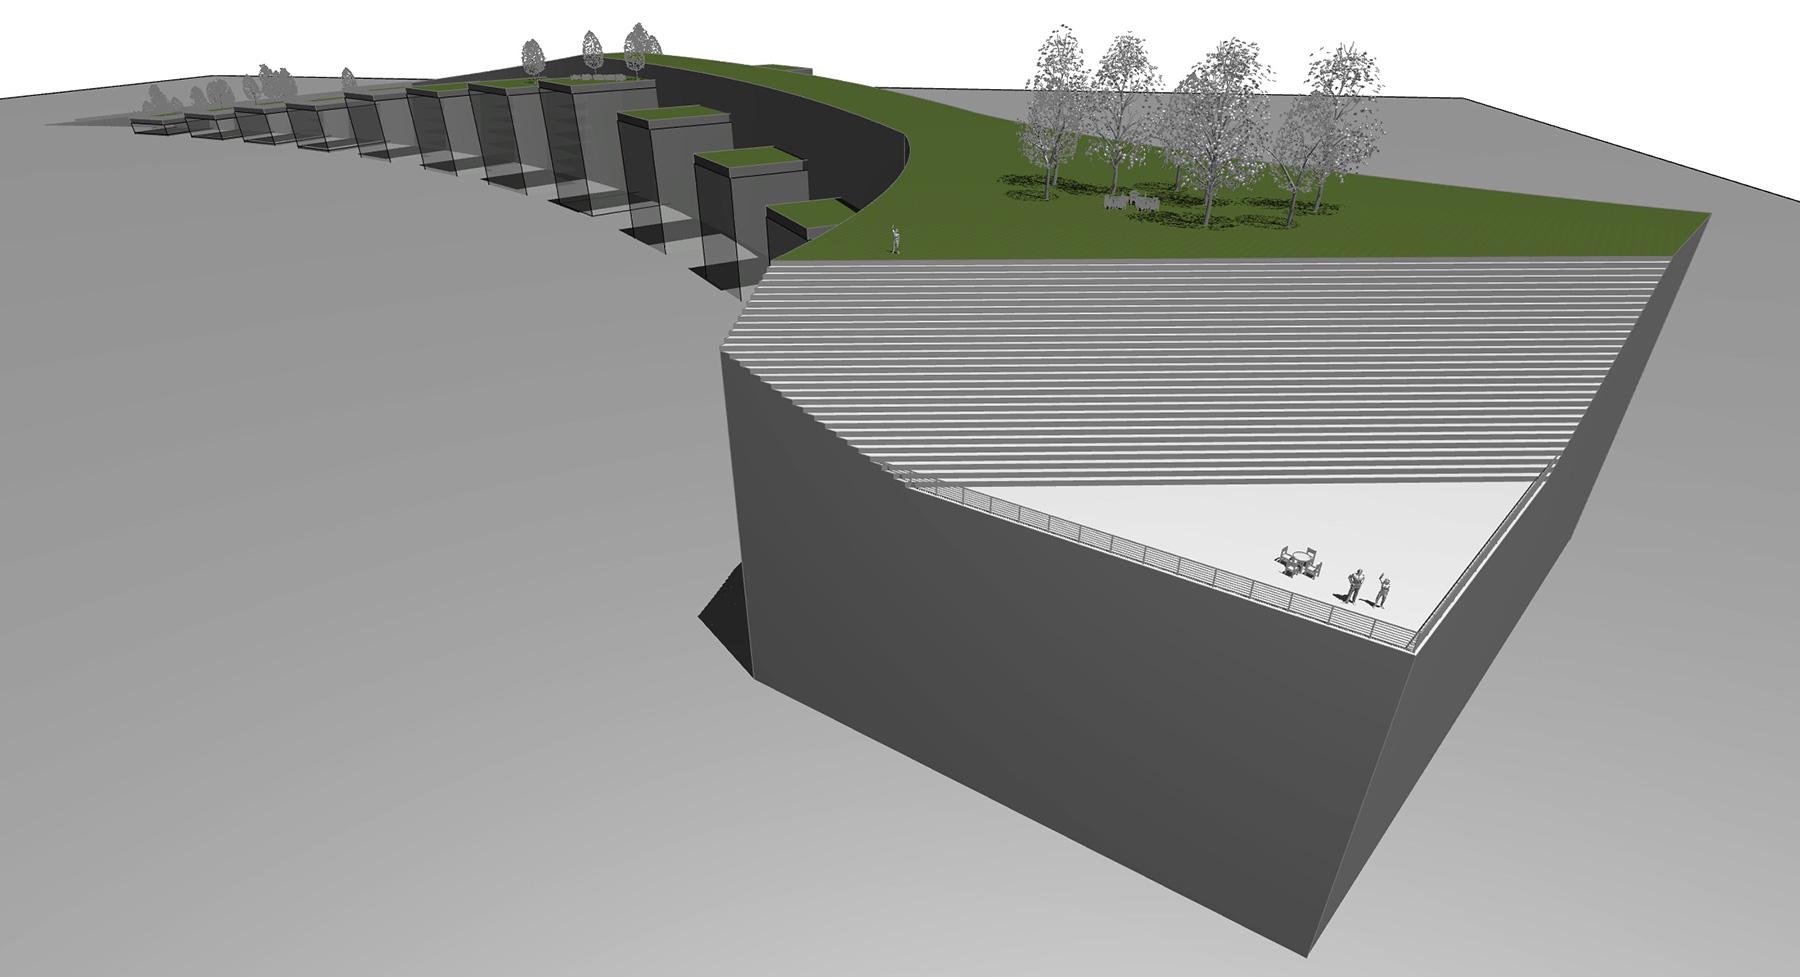 AMPHITHEATER ON TOP OF BUILDING AT TERMINUS OF PARK